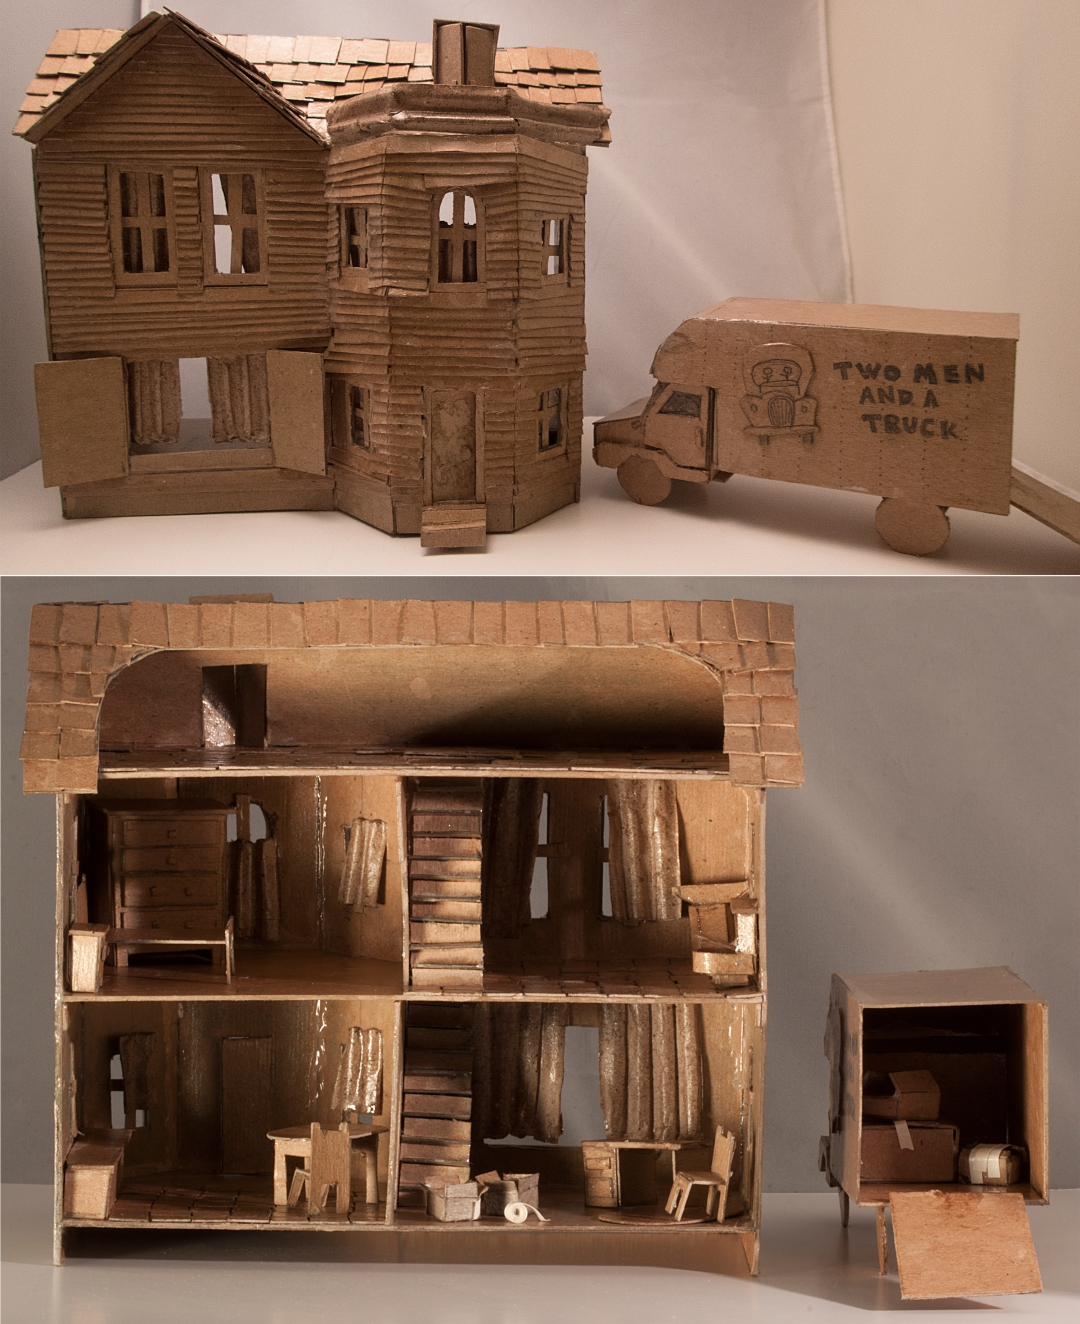 Top 10 Great Cardboard Craft Off Entries Two Men And A Truck